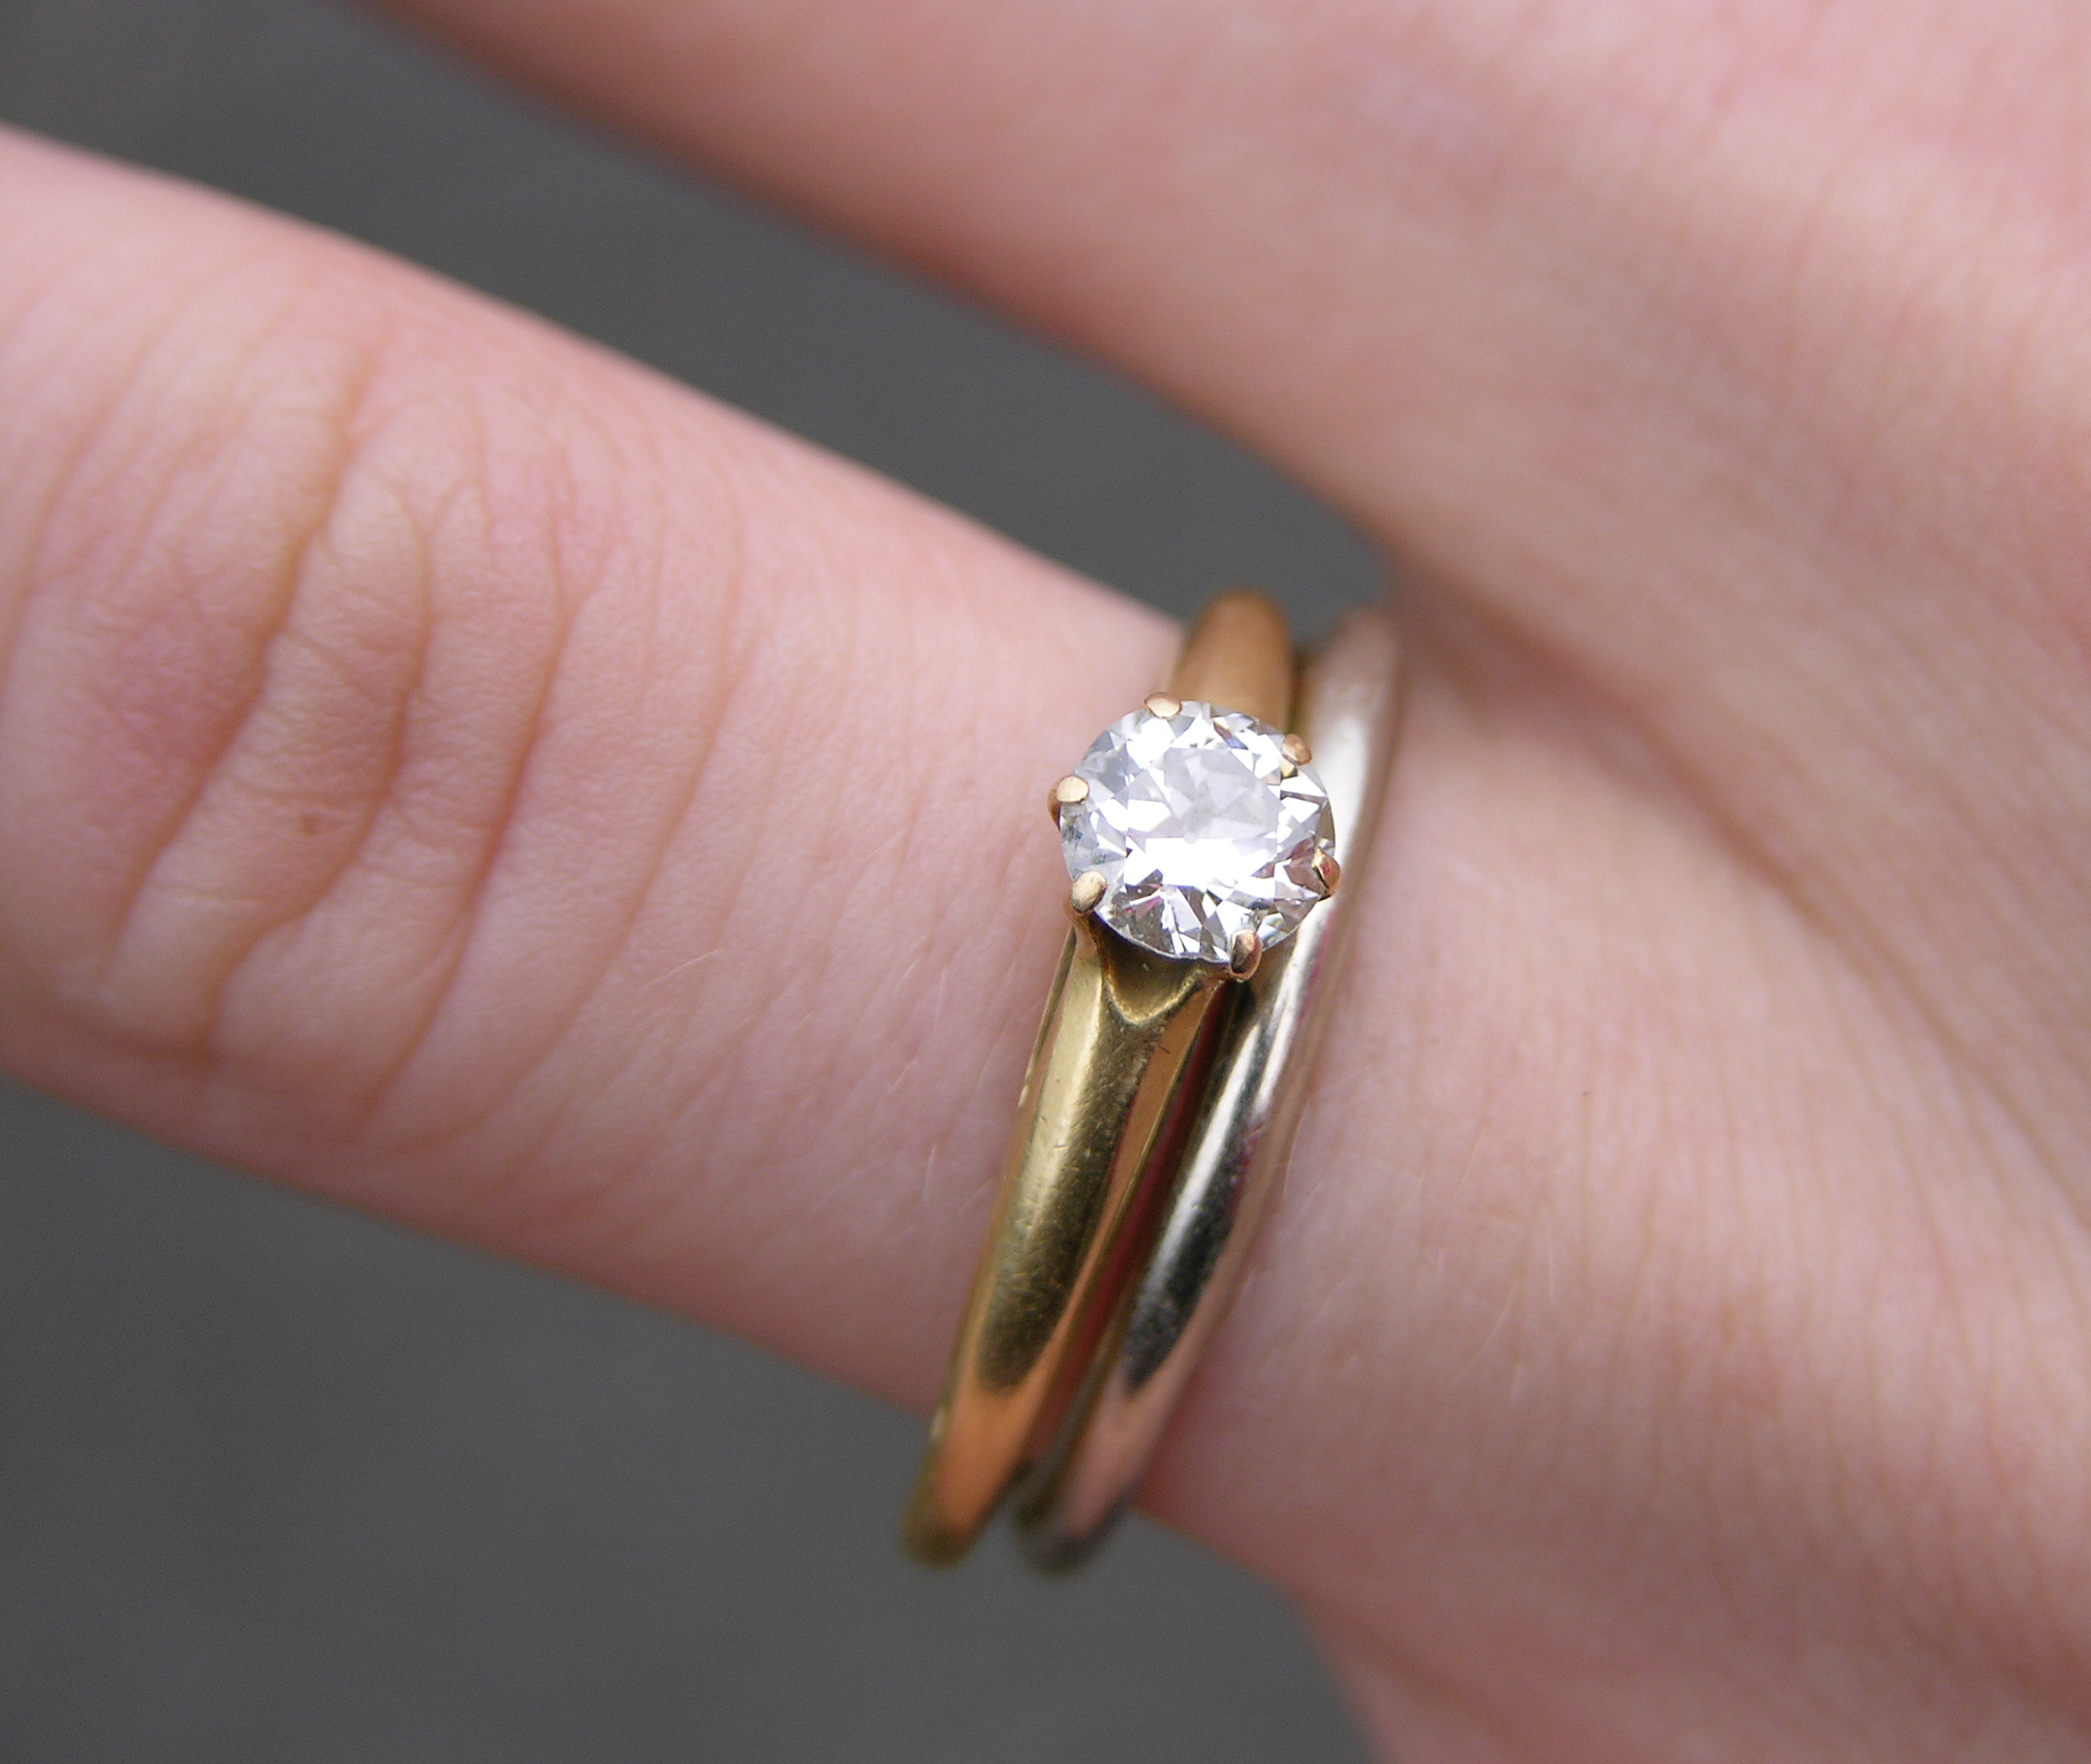 File:Wedding and Engagement Rings 2151px.jpg - Wikimedia Commons